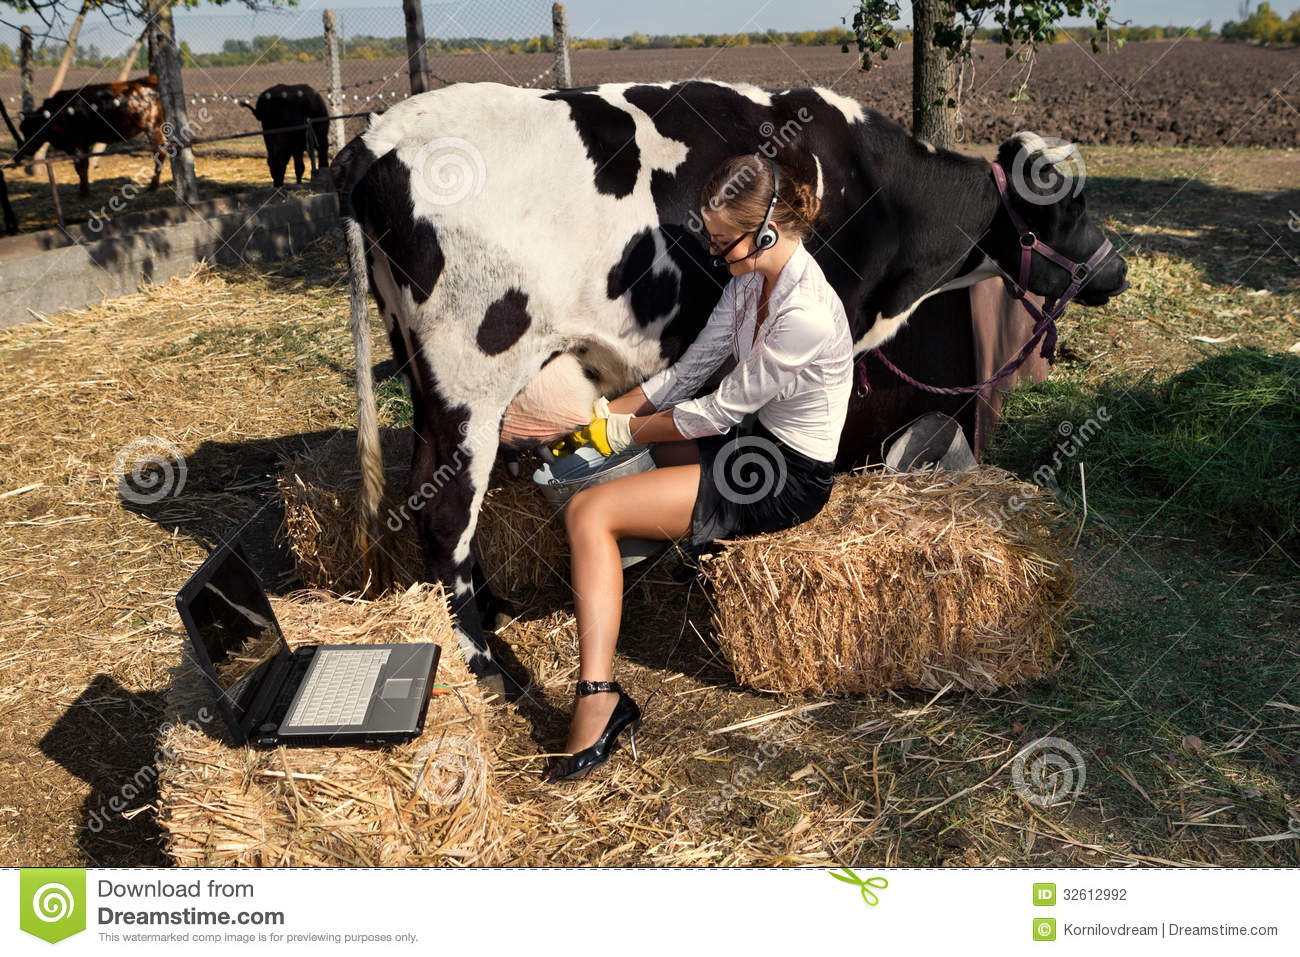 Cow sex photo with human porn galleries